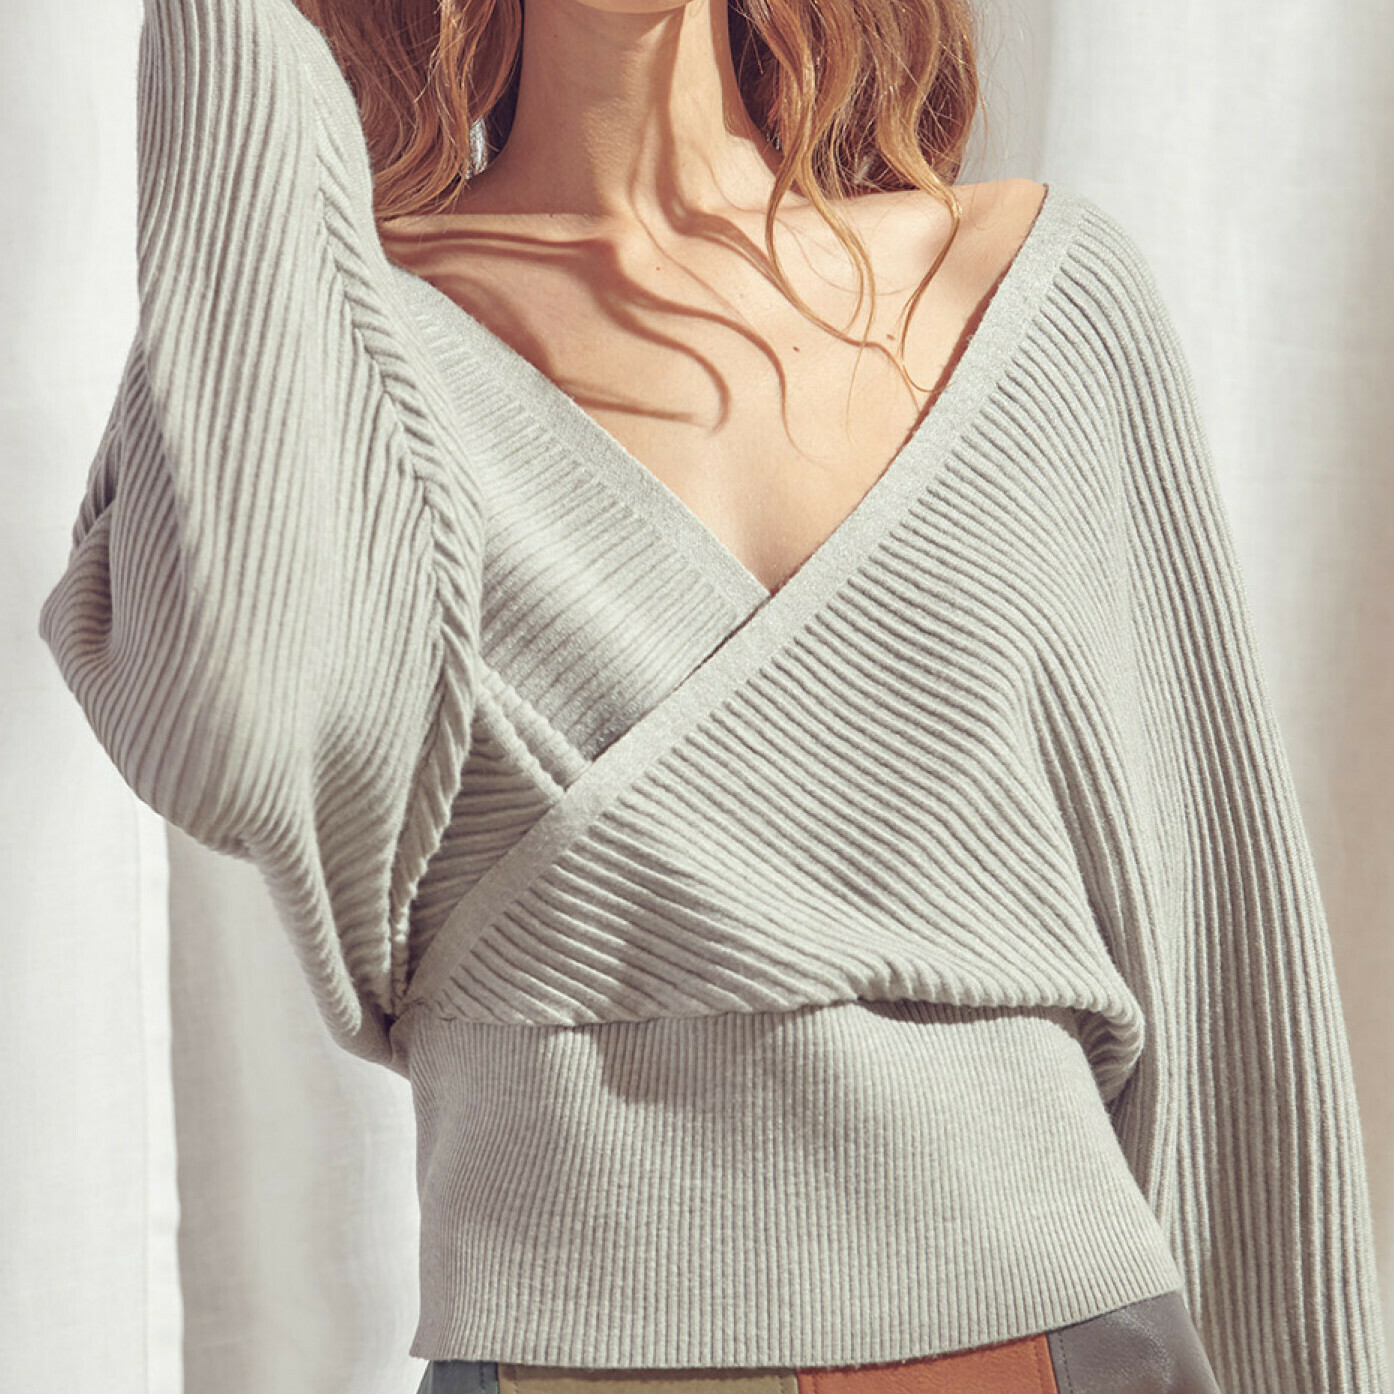 Grey Ribbed Knit Surplice Top - BT1598